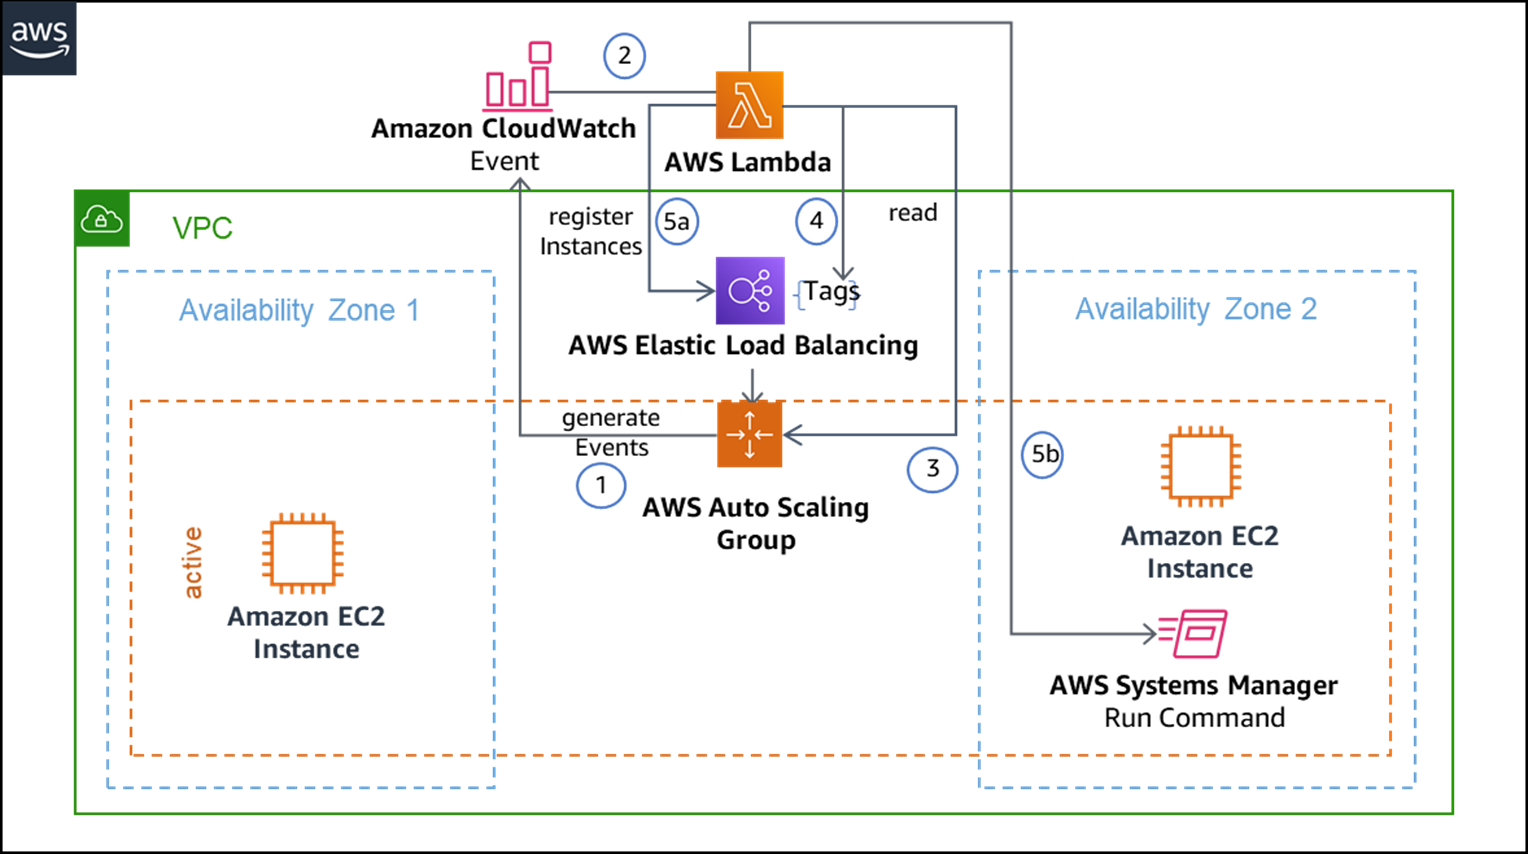 Warming Amazon EC2 Instances Using AWS Lambda to Improve Application Availability